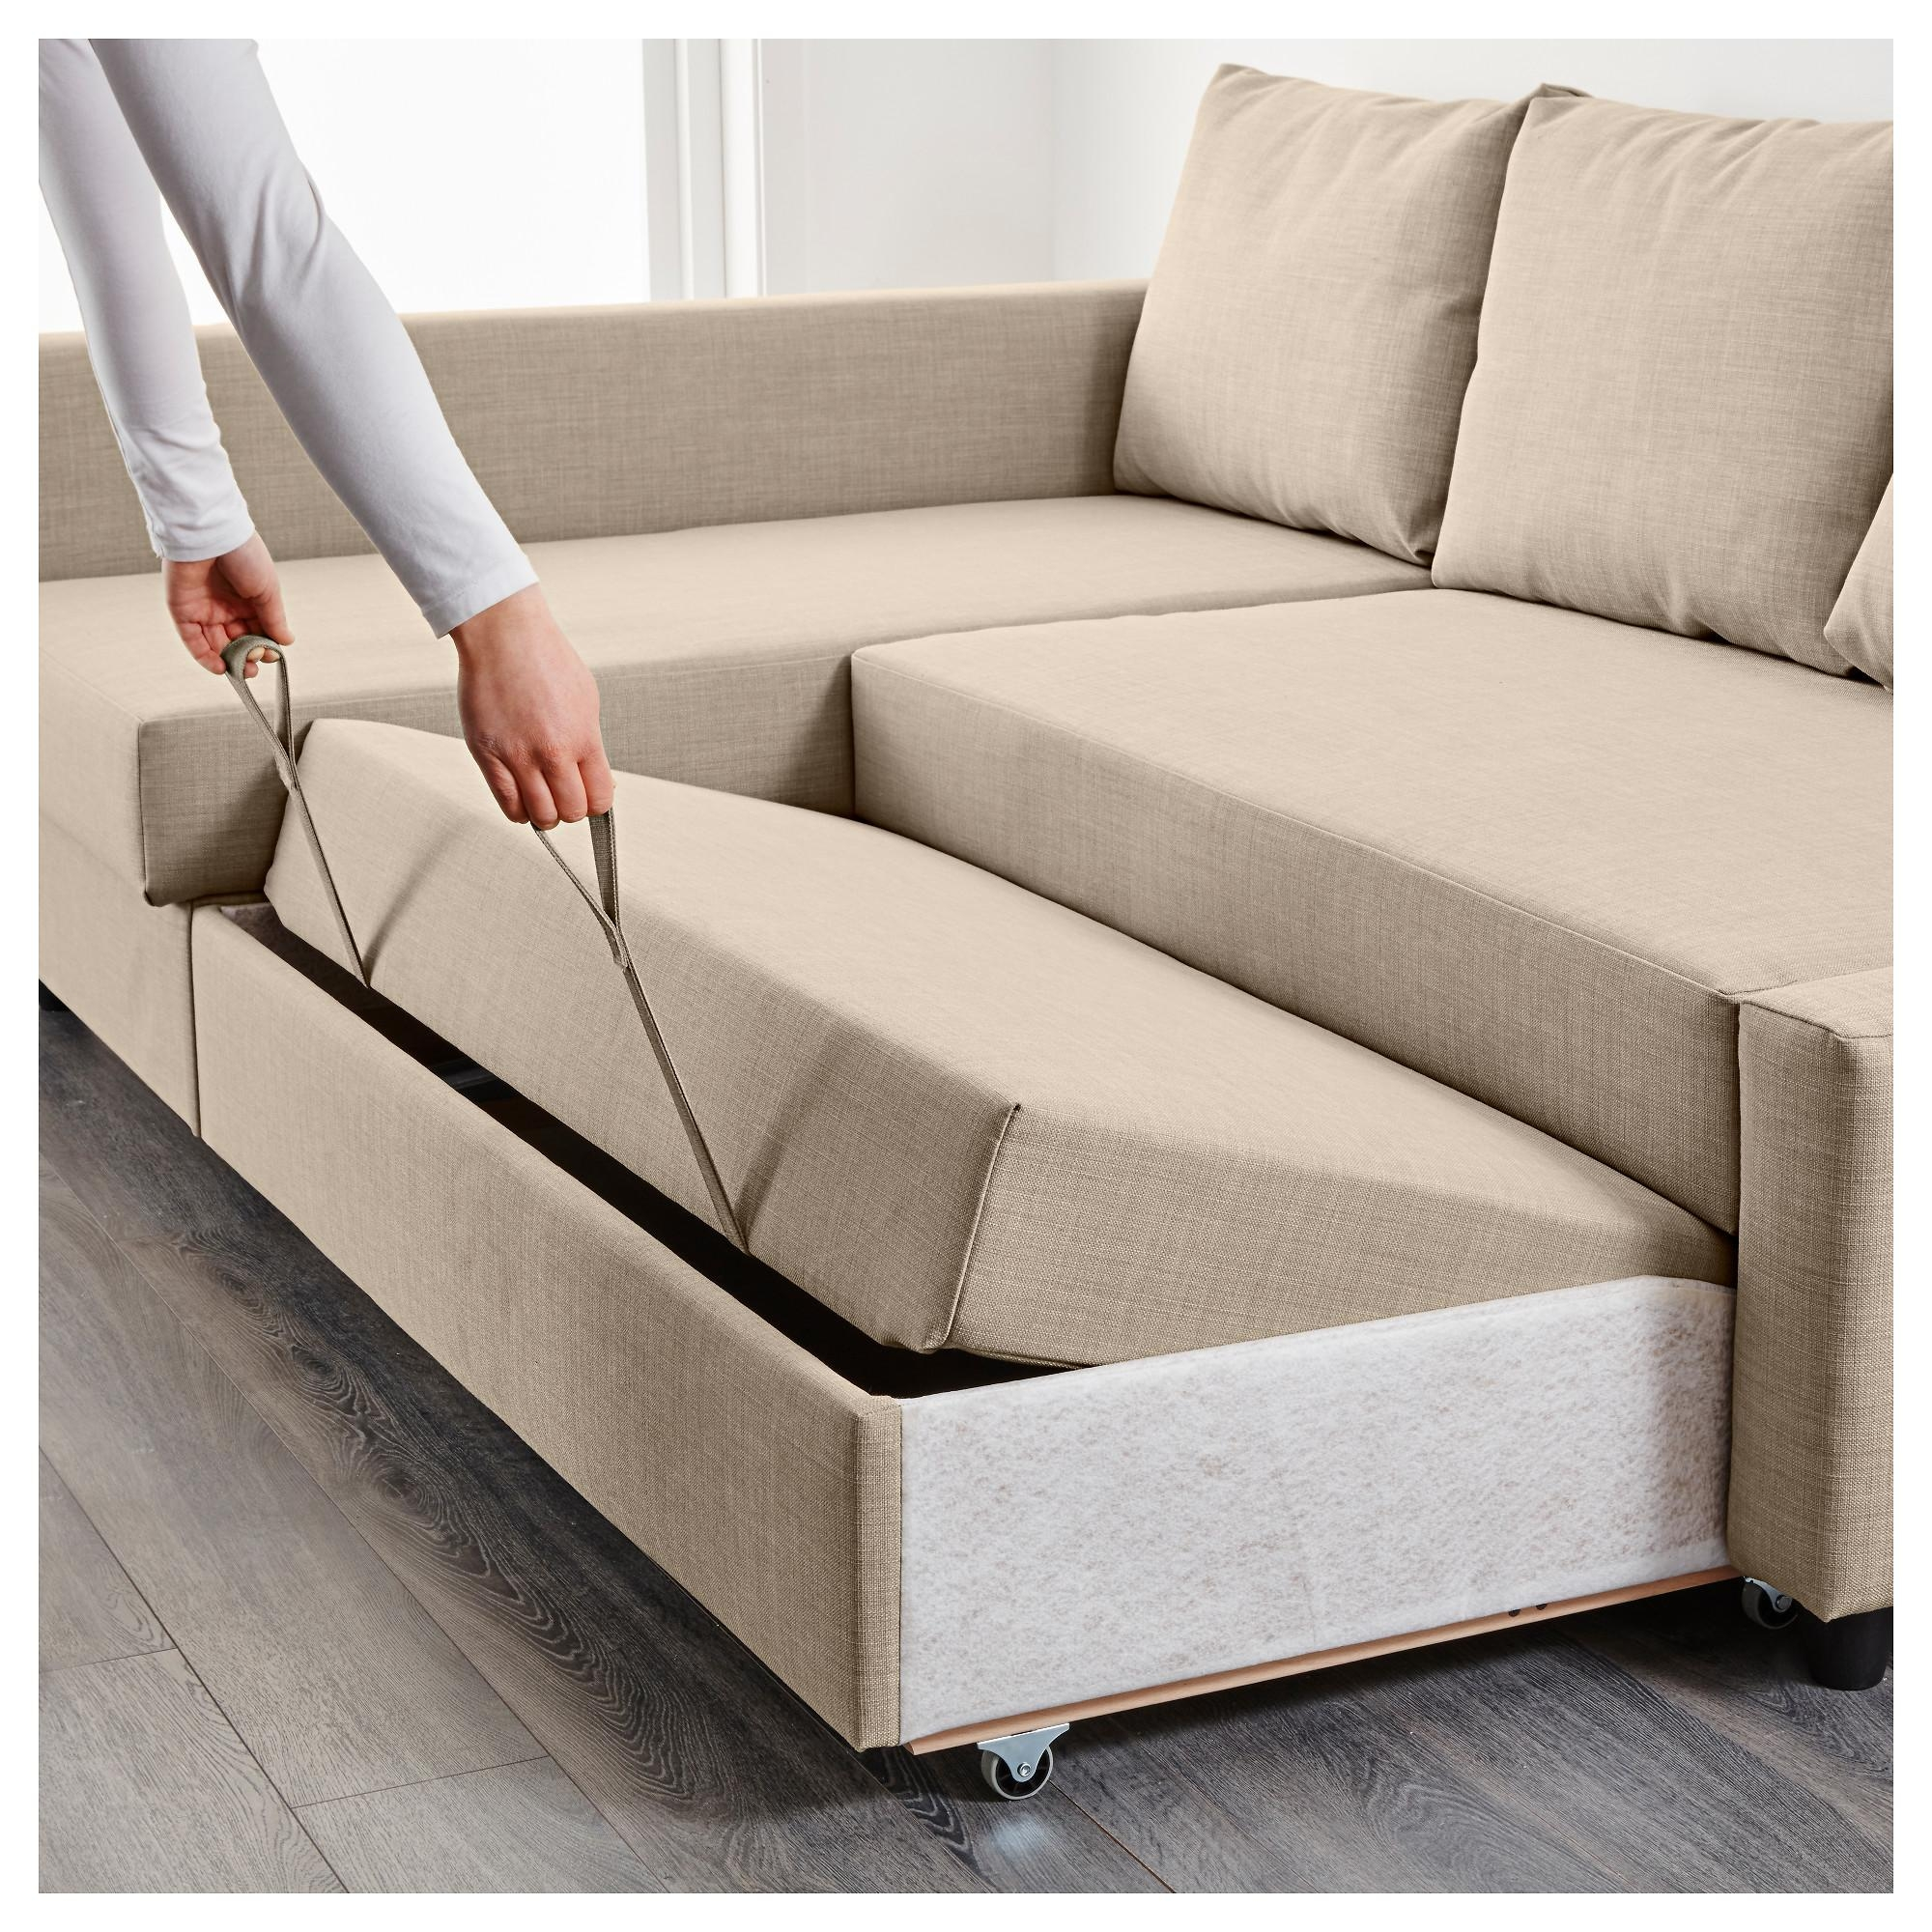 Friheten Corner Sofa Bed With Storage Skiftebo Beige – Ikea Regarding Ikea Sofa Storage (View 8 of 20)